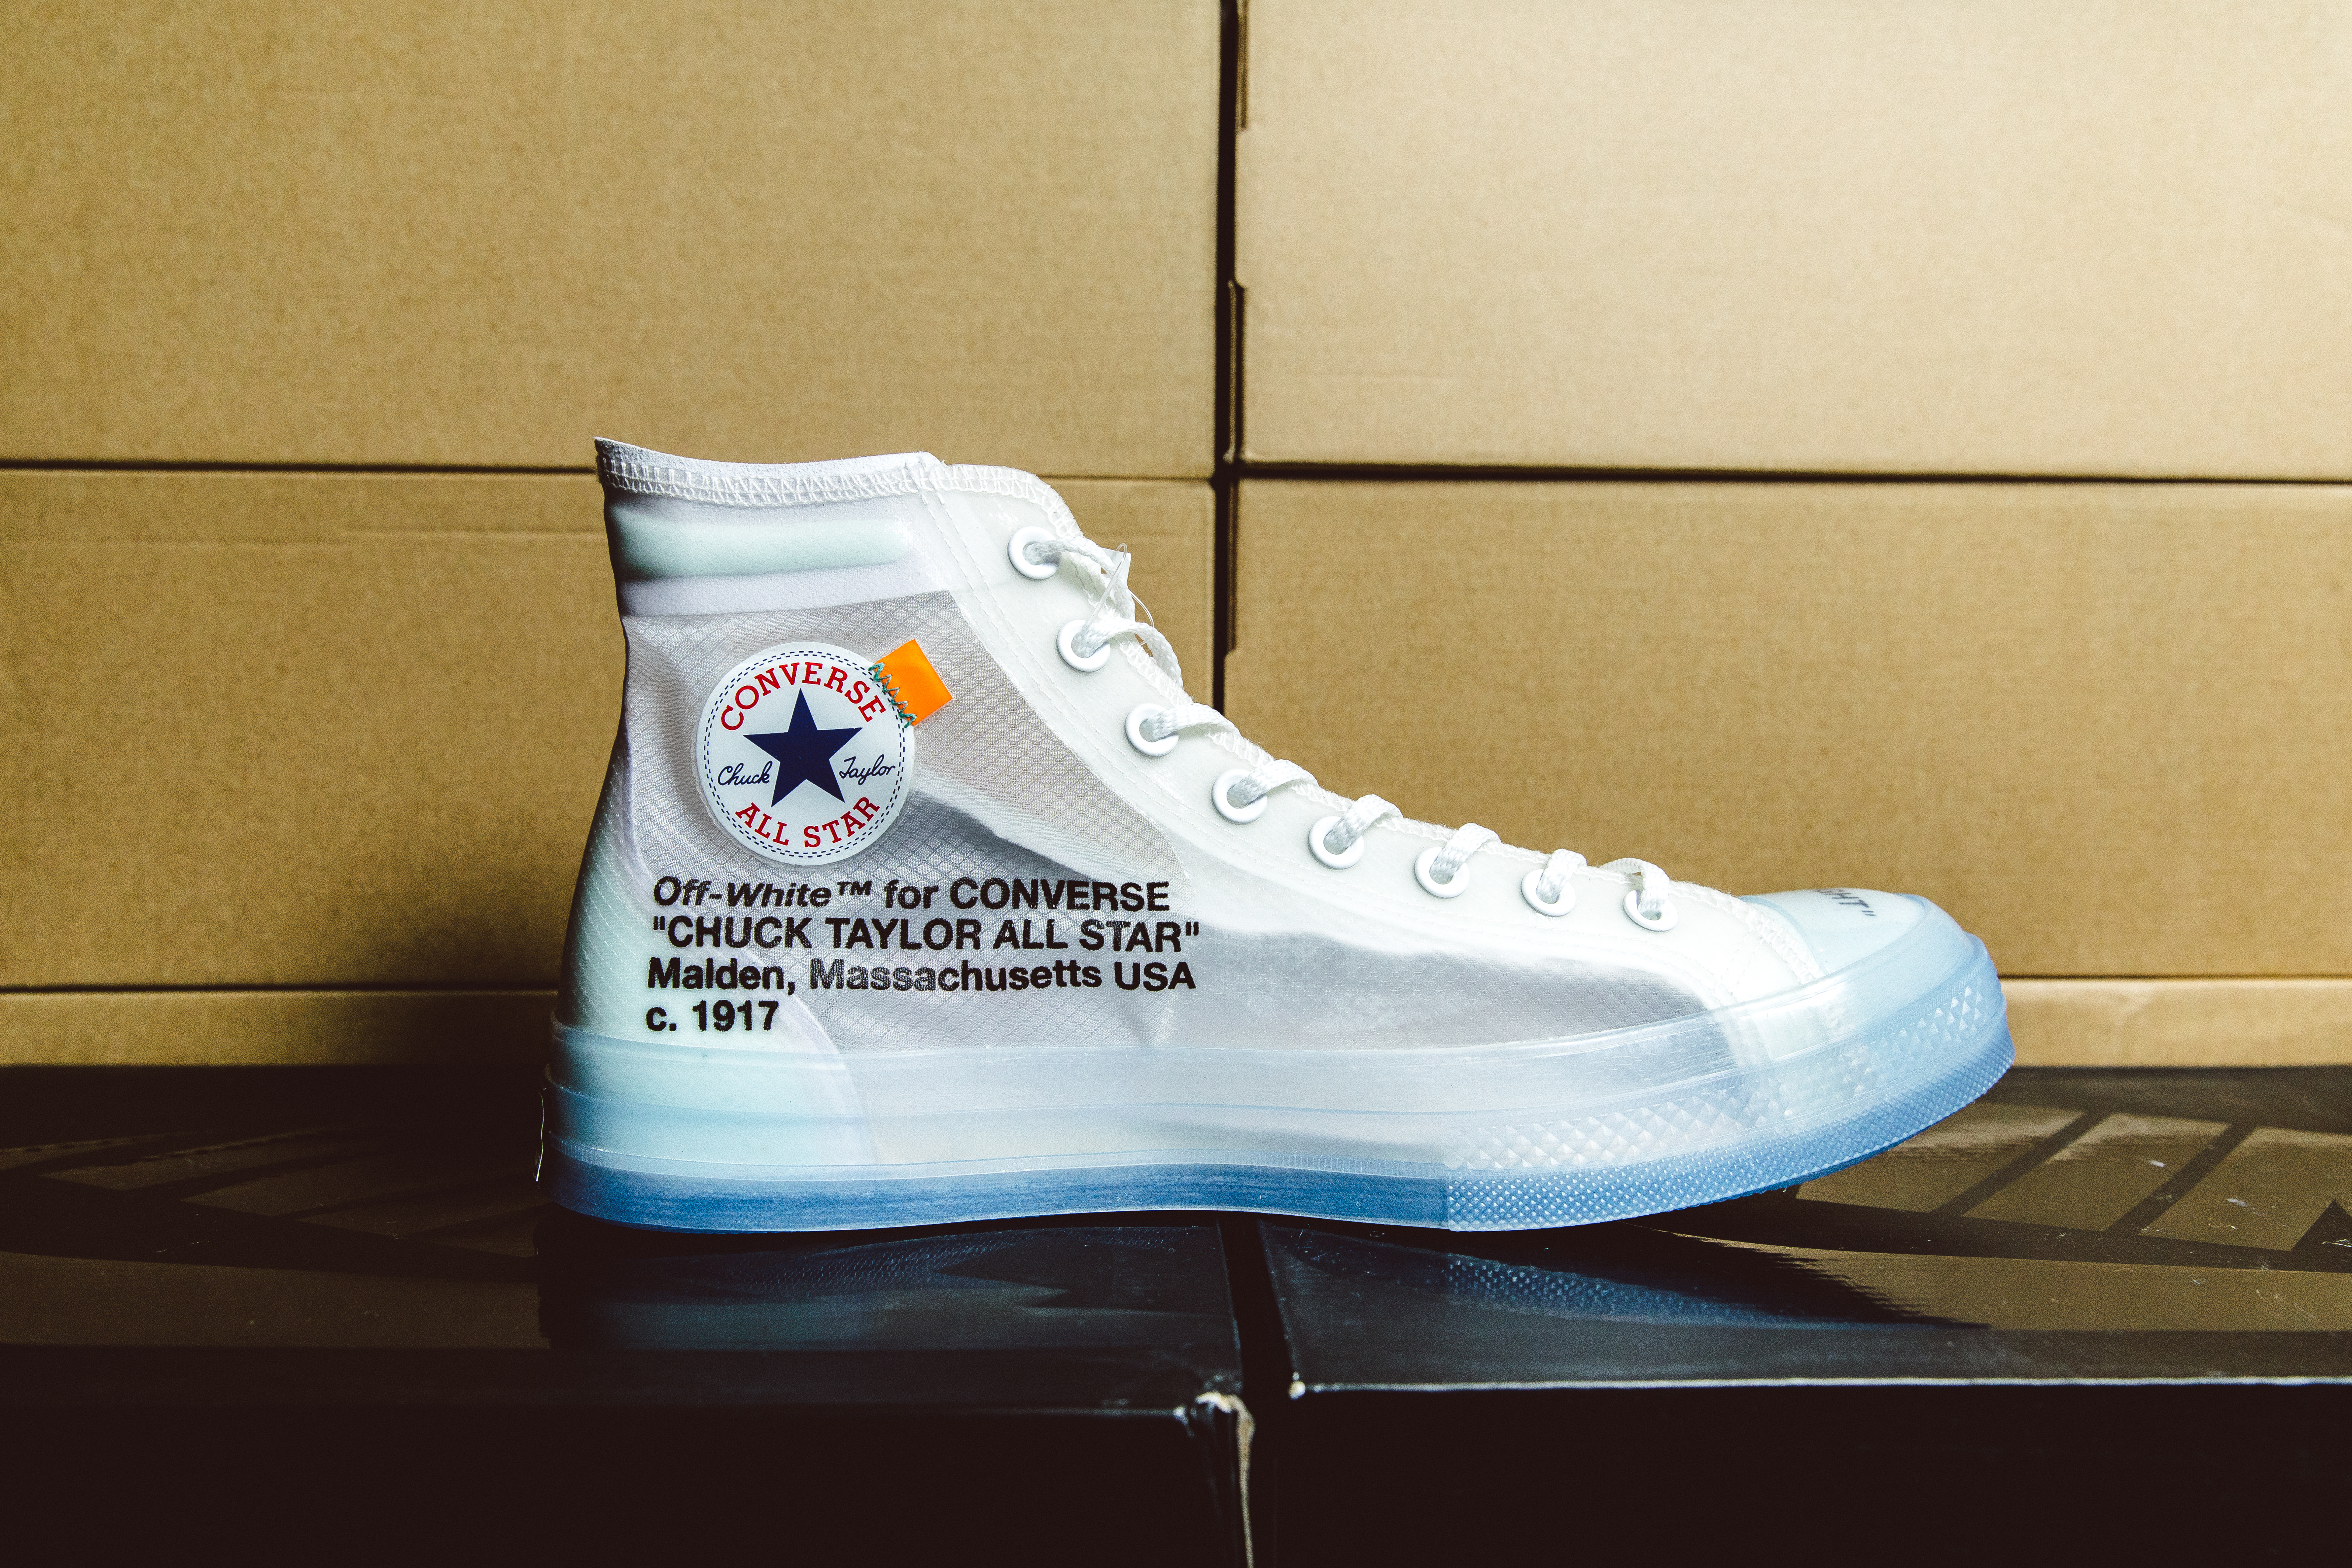 Brody's Nike x Off-White Chuck Taylor